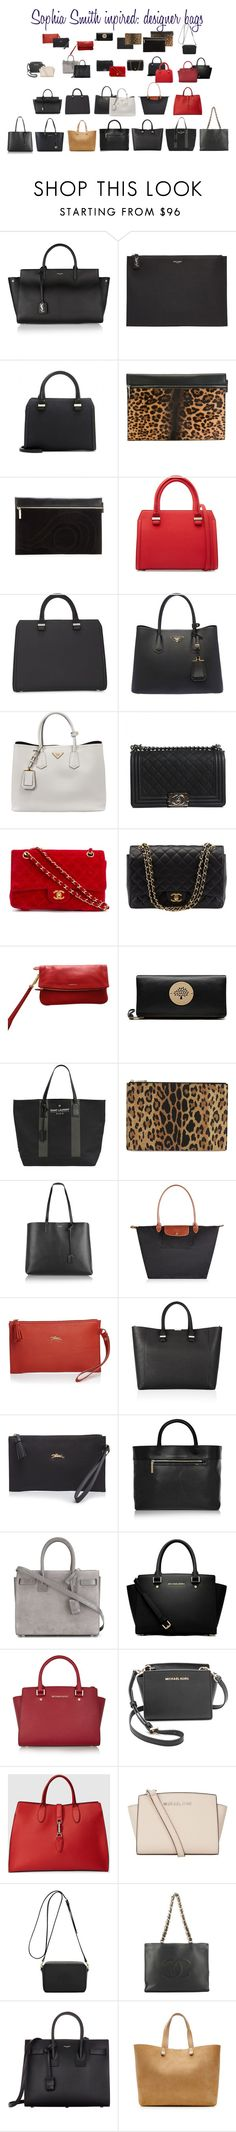 """""""Sophia Smith inspired: designer bags"""" by alwayswearwhatyouwanttowear ❤ liked on Polyvore featuring Yves Saint Laurent, Victoria Beckham, Prada, Chanel, Burberry, Mulberry, Givenchy, Longchamp, MICHAEL Michael Kors and Gucci"""